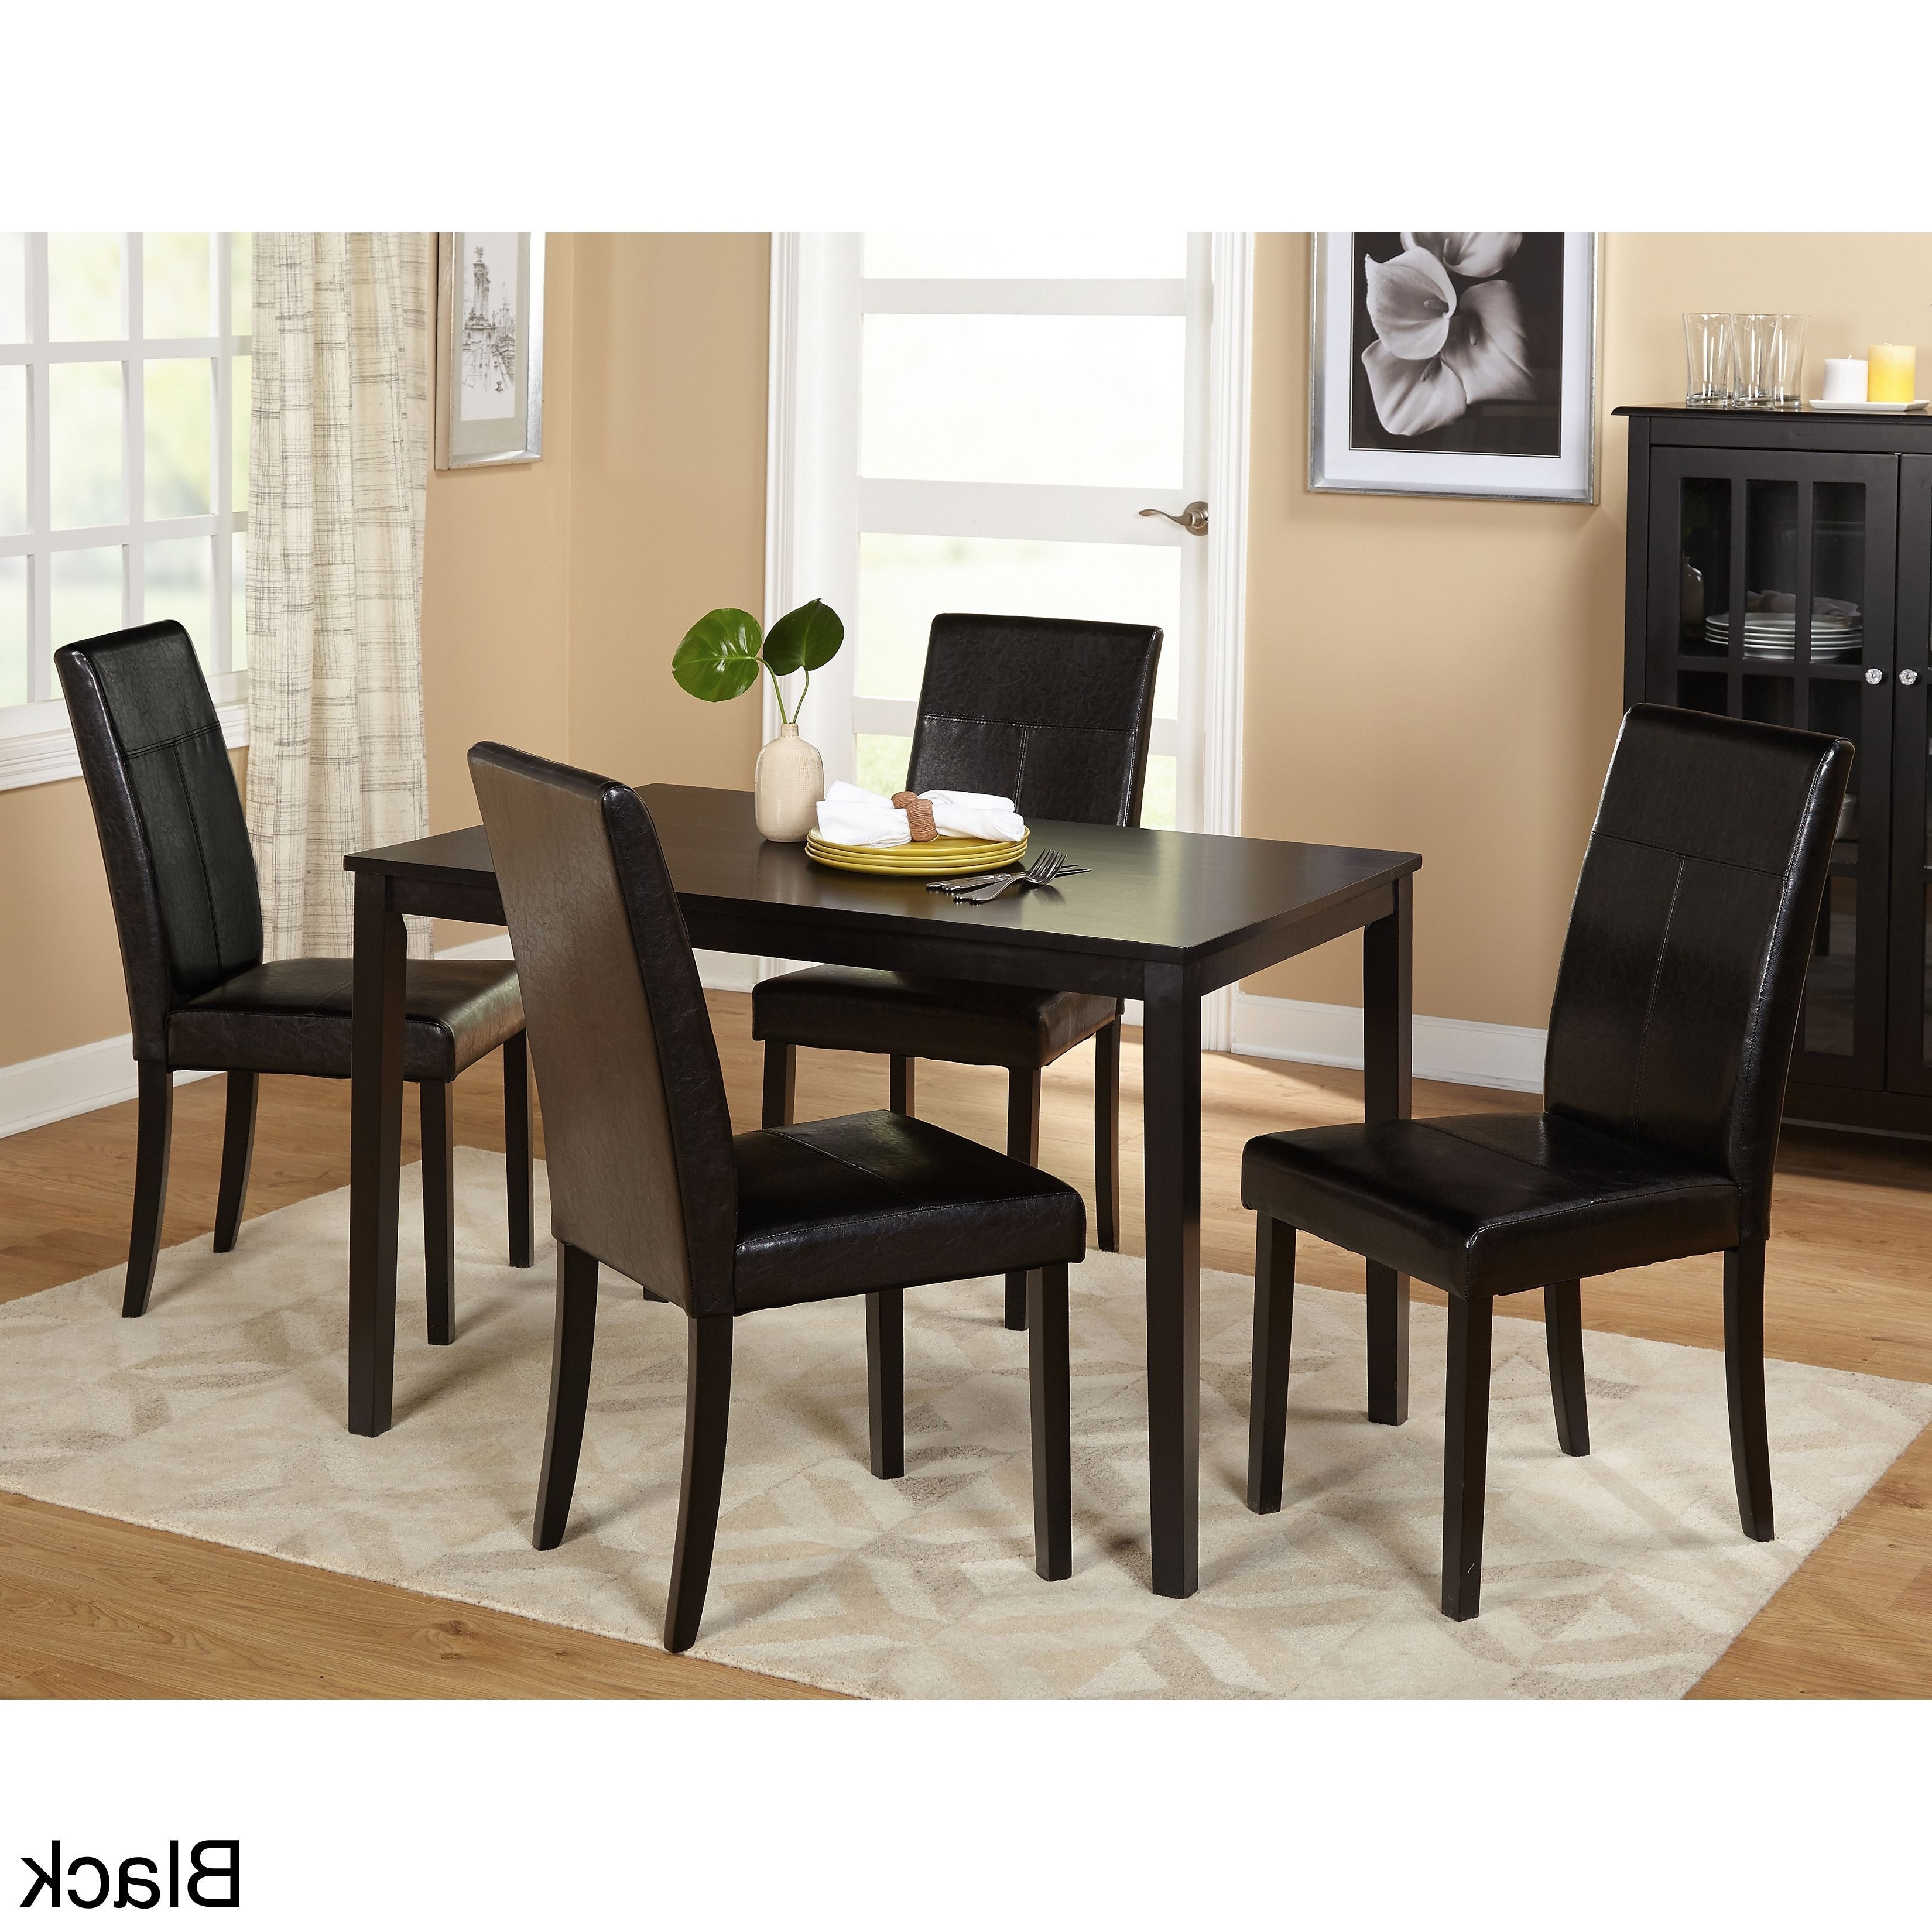 Toby 7 Piece Dining Setorren Ellis Reviews In Well Liked Helms 6 Piece Rectangle Dining Sets With Side Chairs (View 14 of 25)